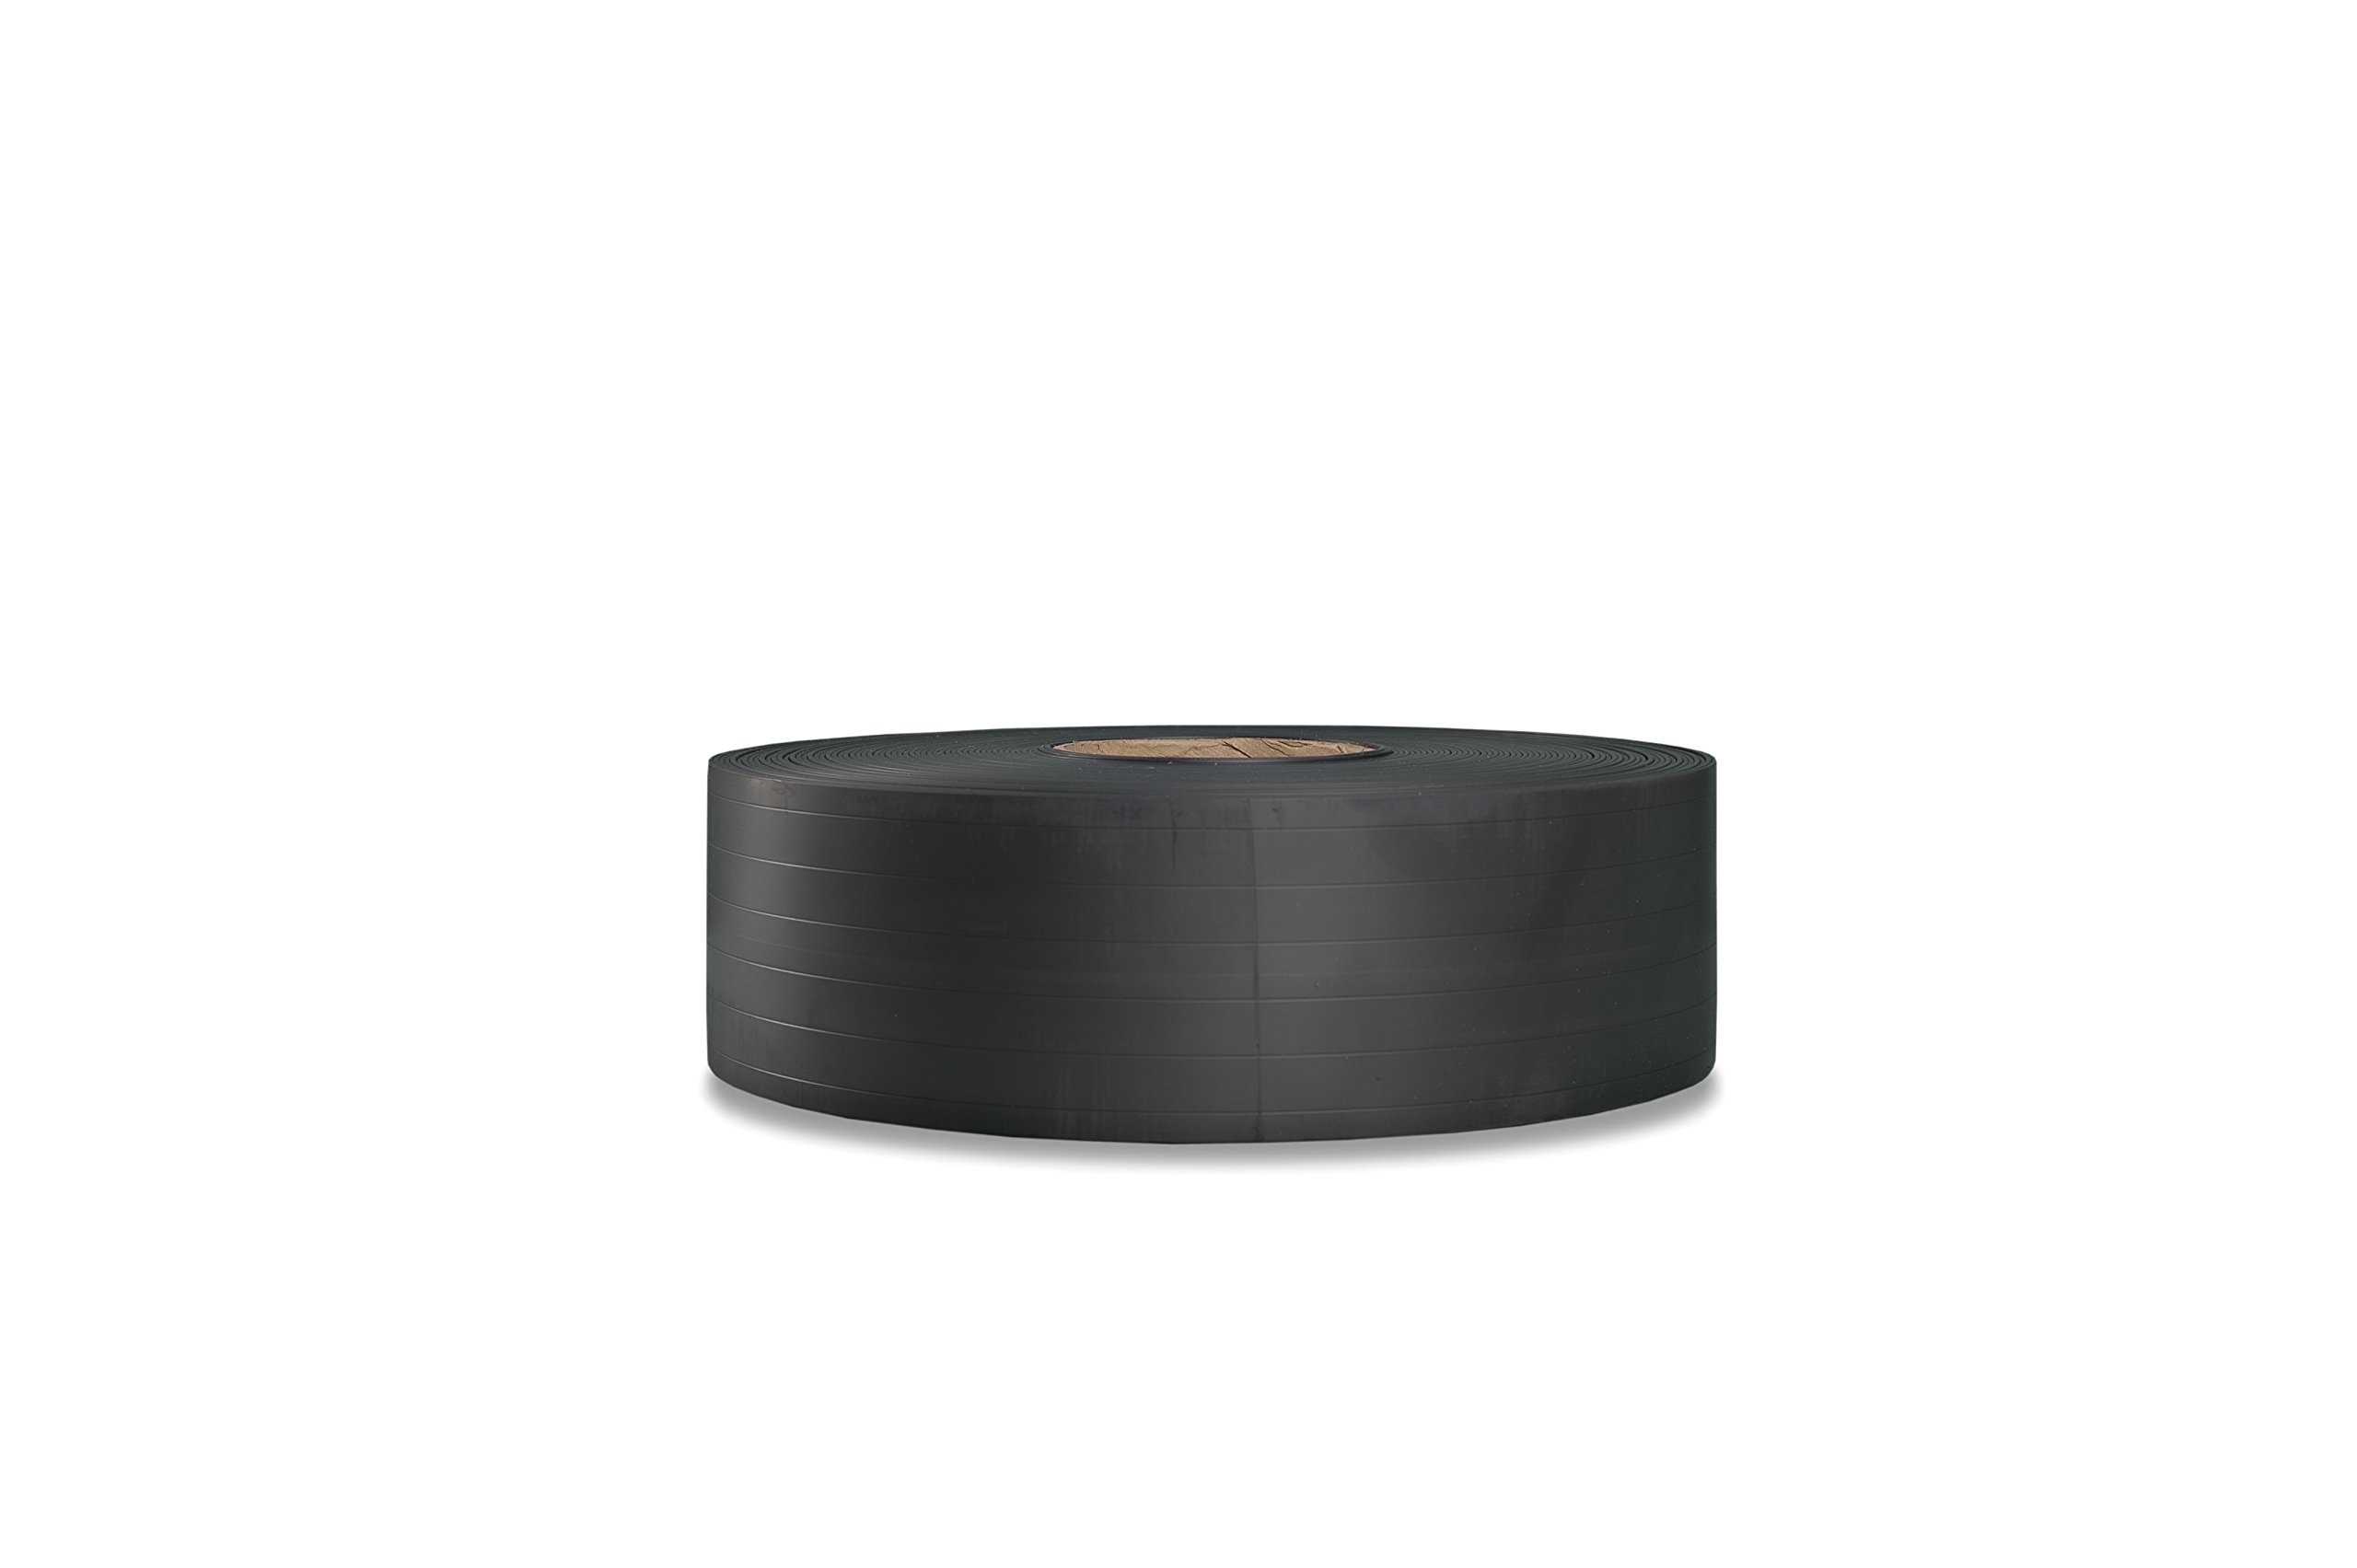 3'' X 100' - 60 mil Plain Magnetic Strip Roll by Discount Magnets